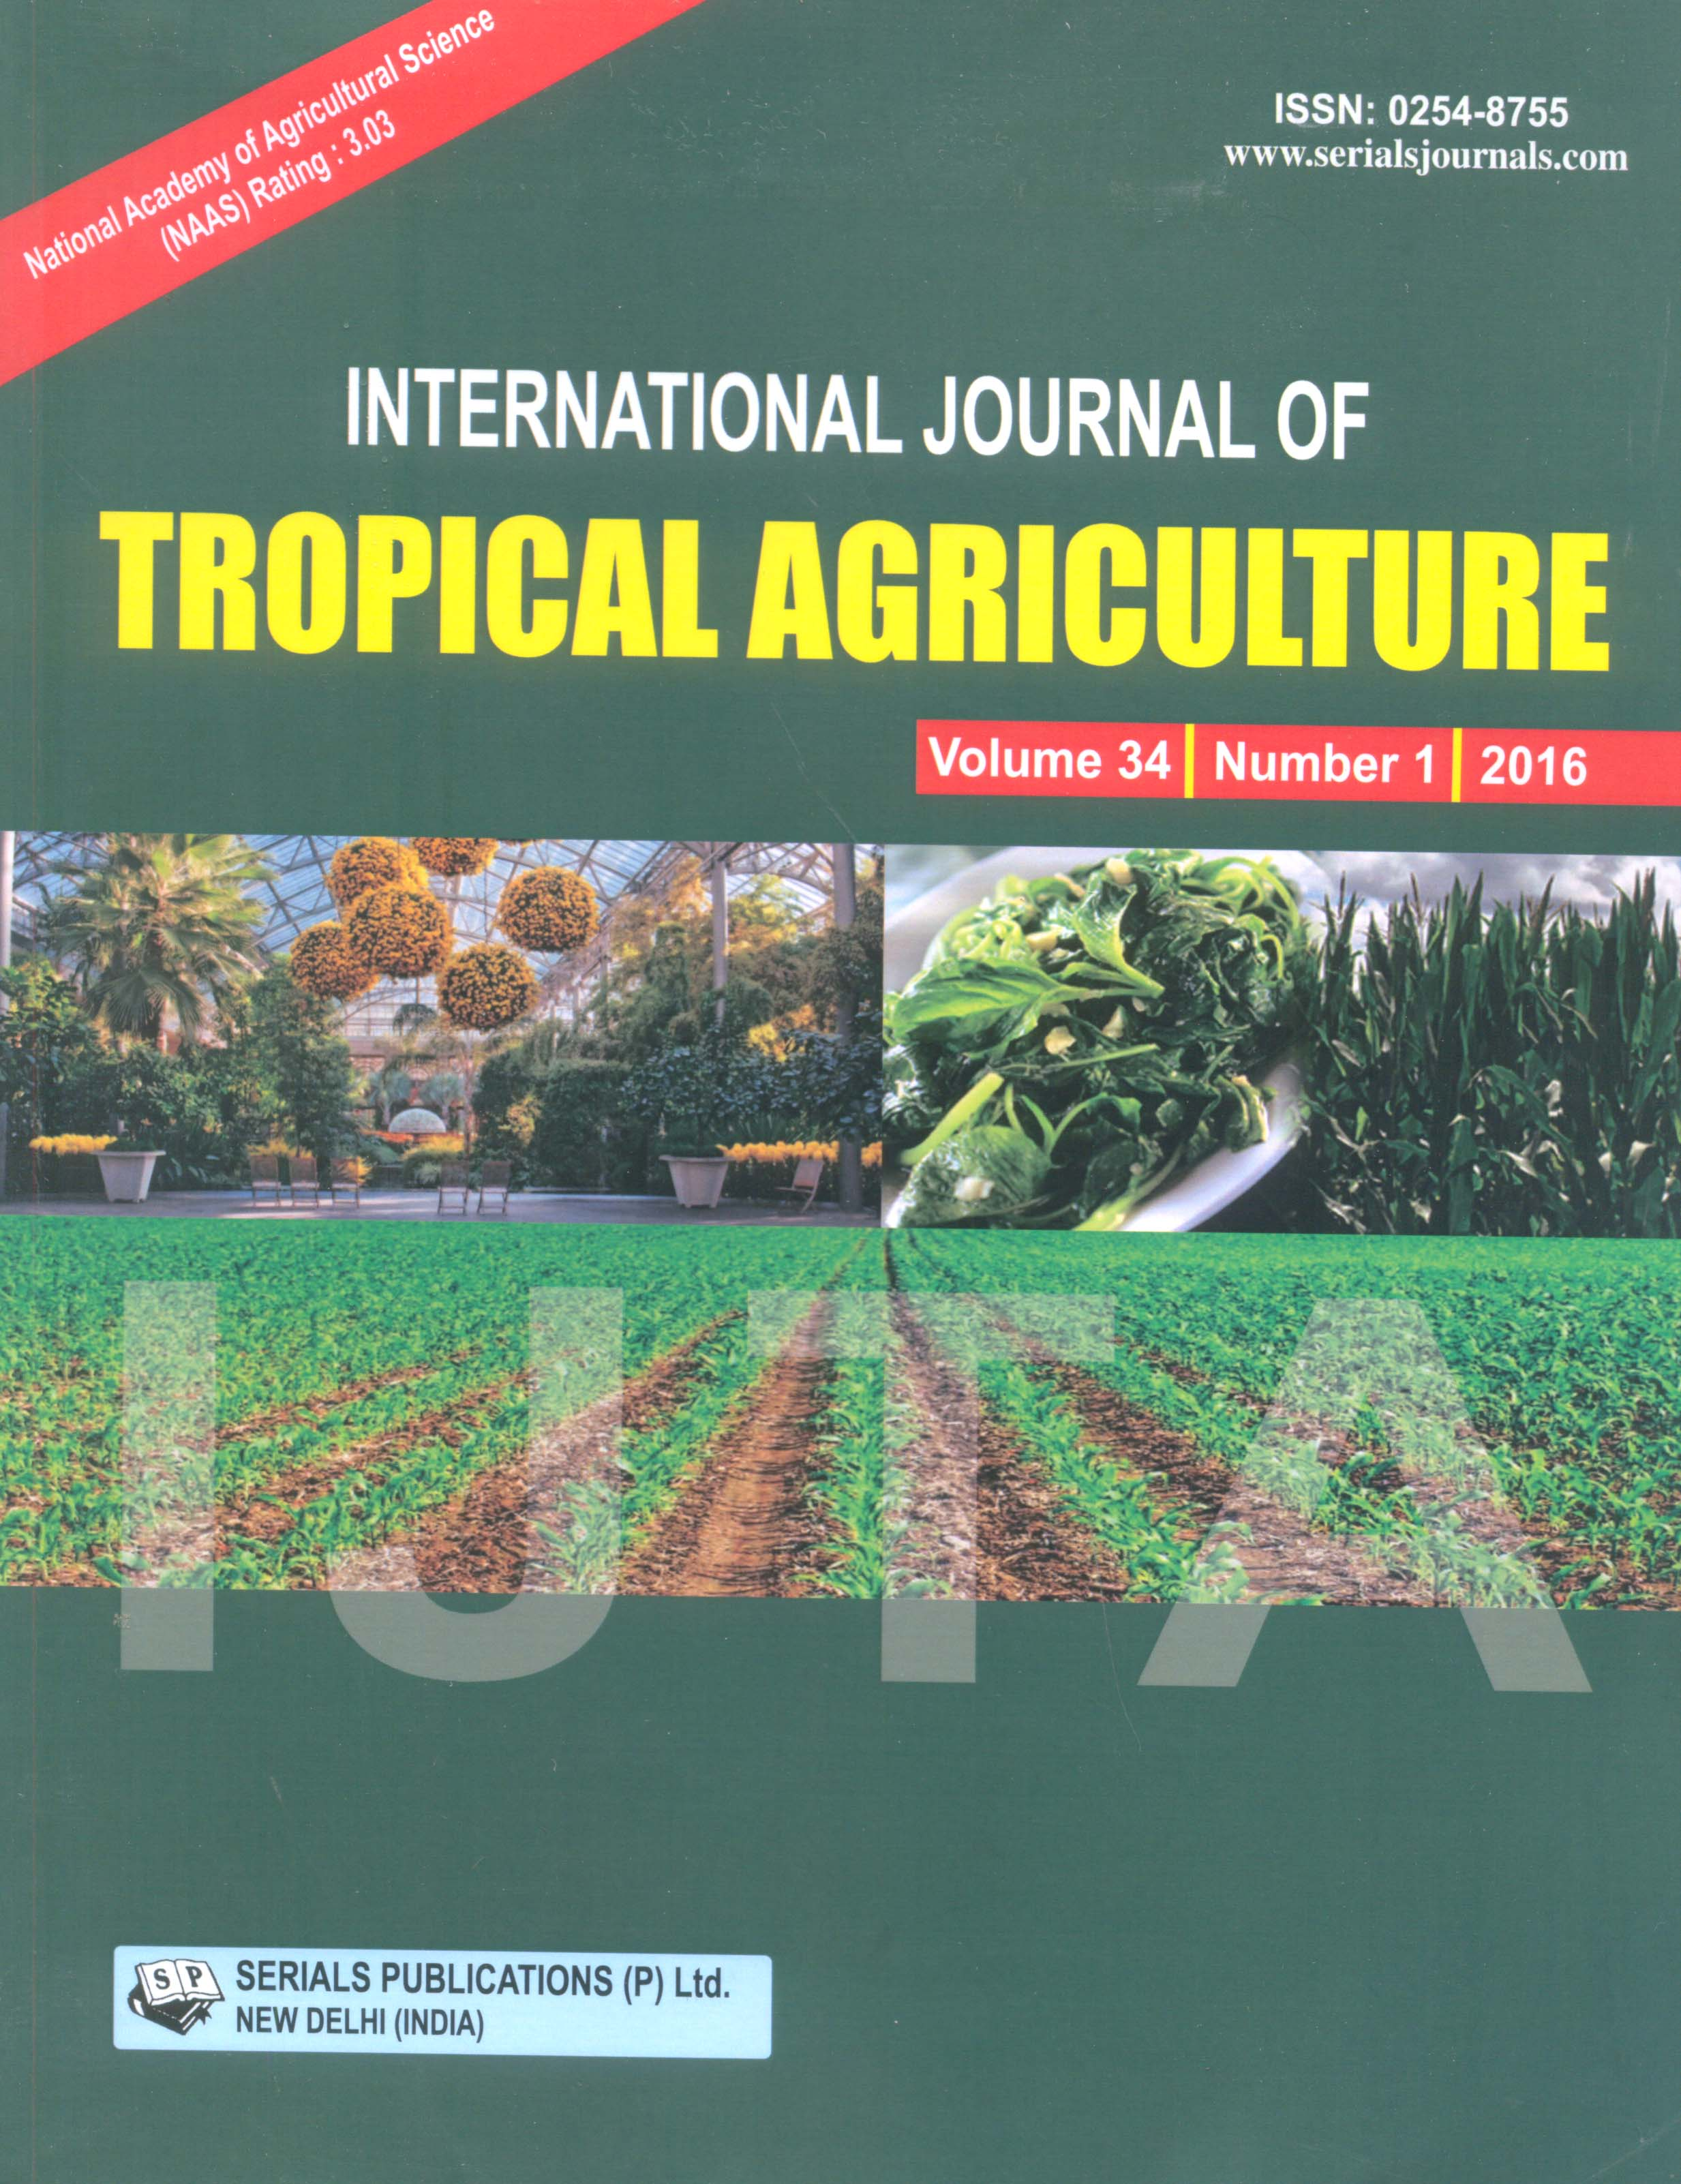 International Journal of Tropical Agriculture